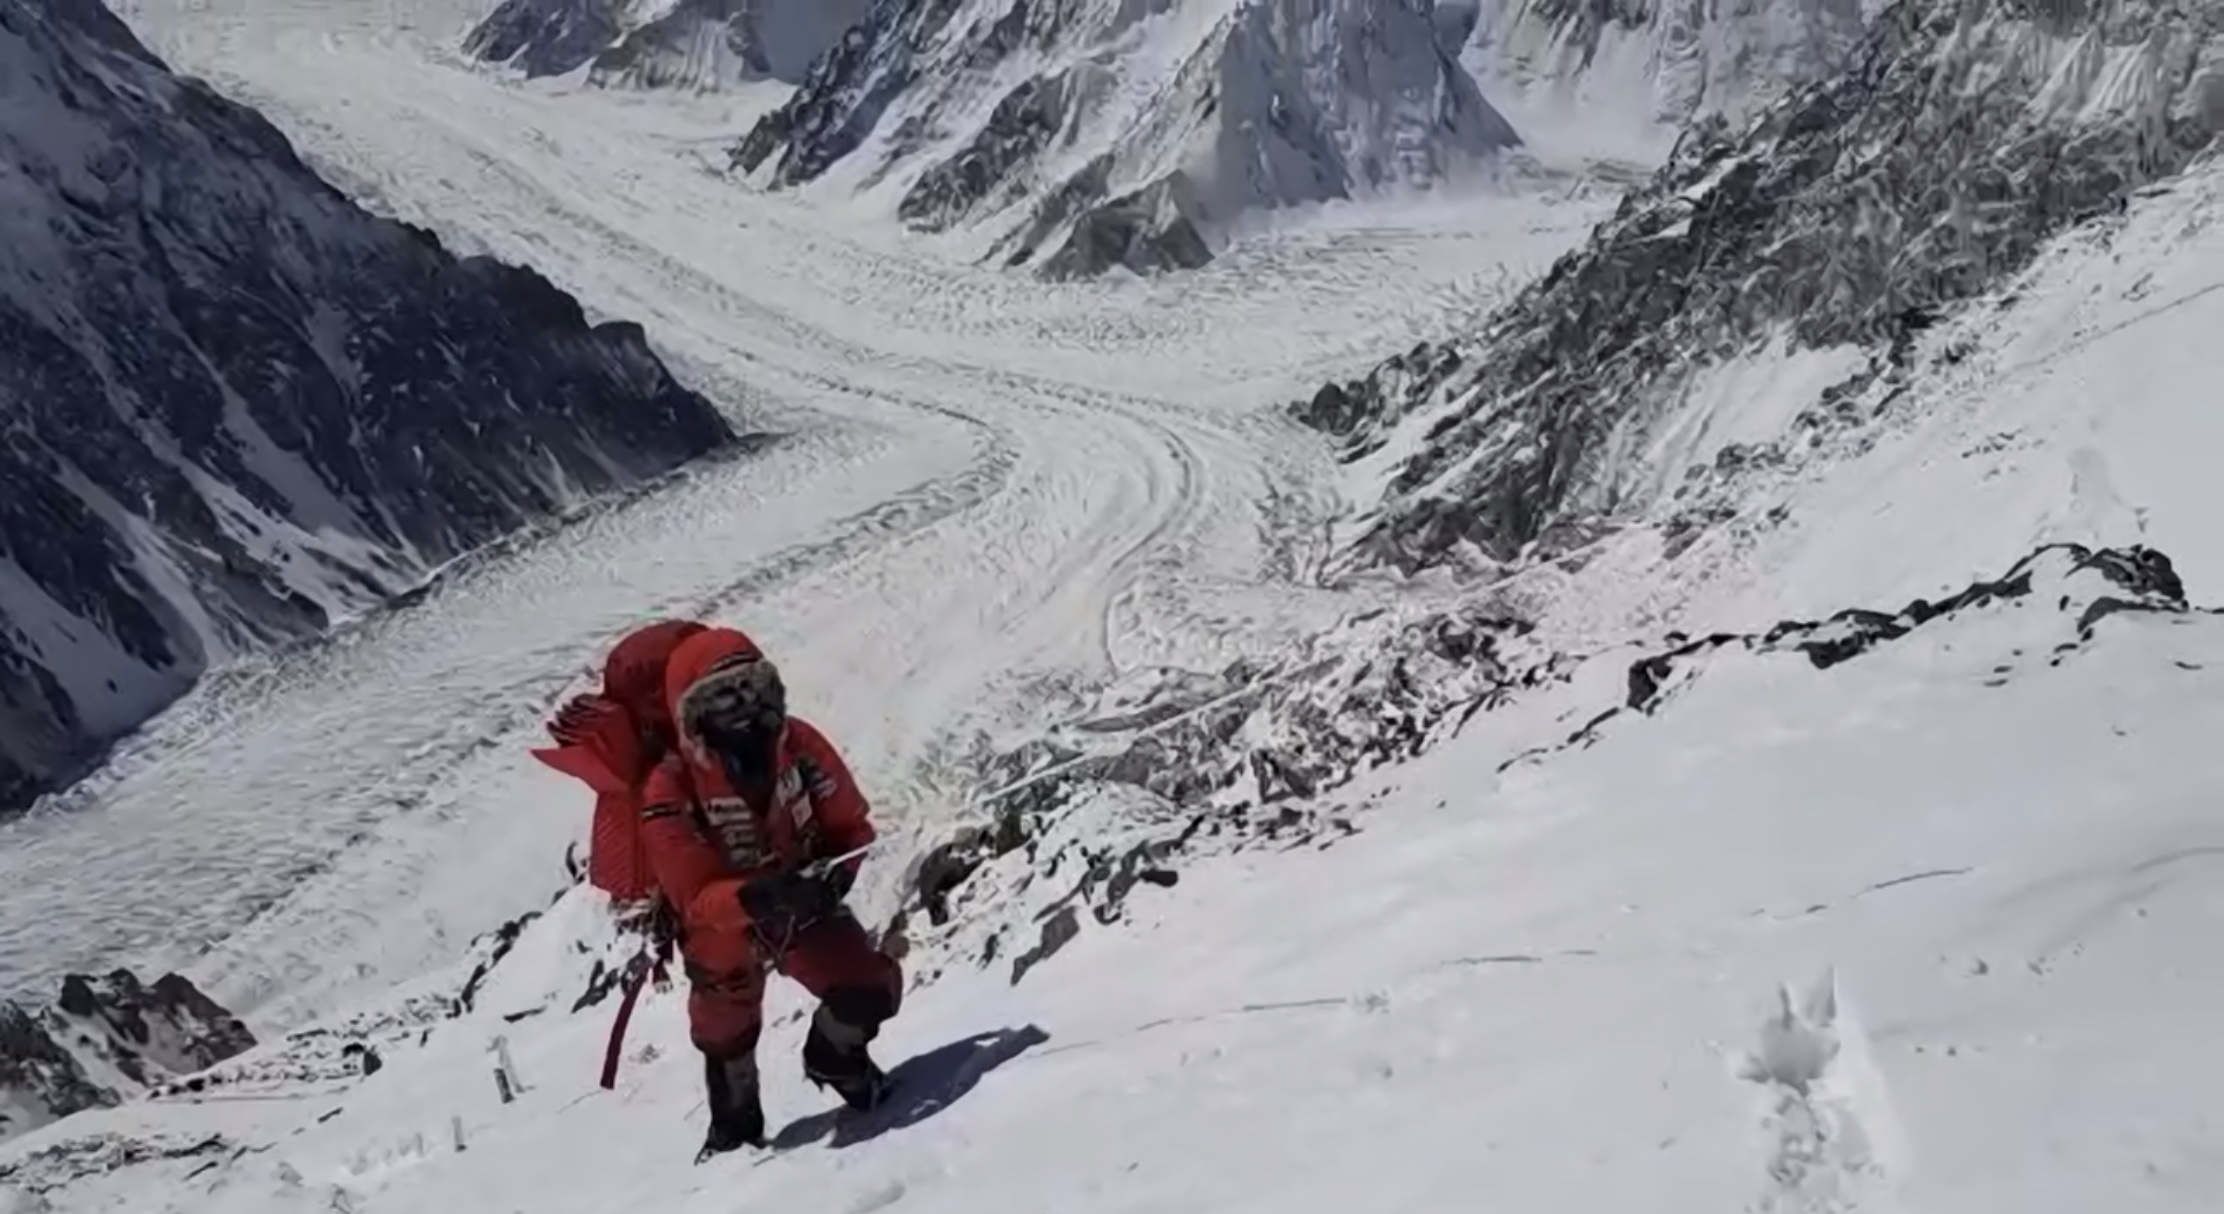 ALEX TXIKON SE RETIRA K2 INVERNAL 2019. VIDEO, FOTOS Y CRÓNICA PERSONAL DE ALEX.